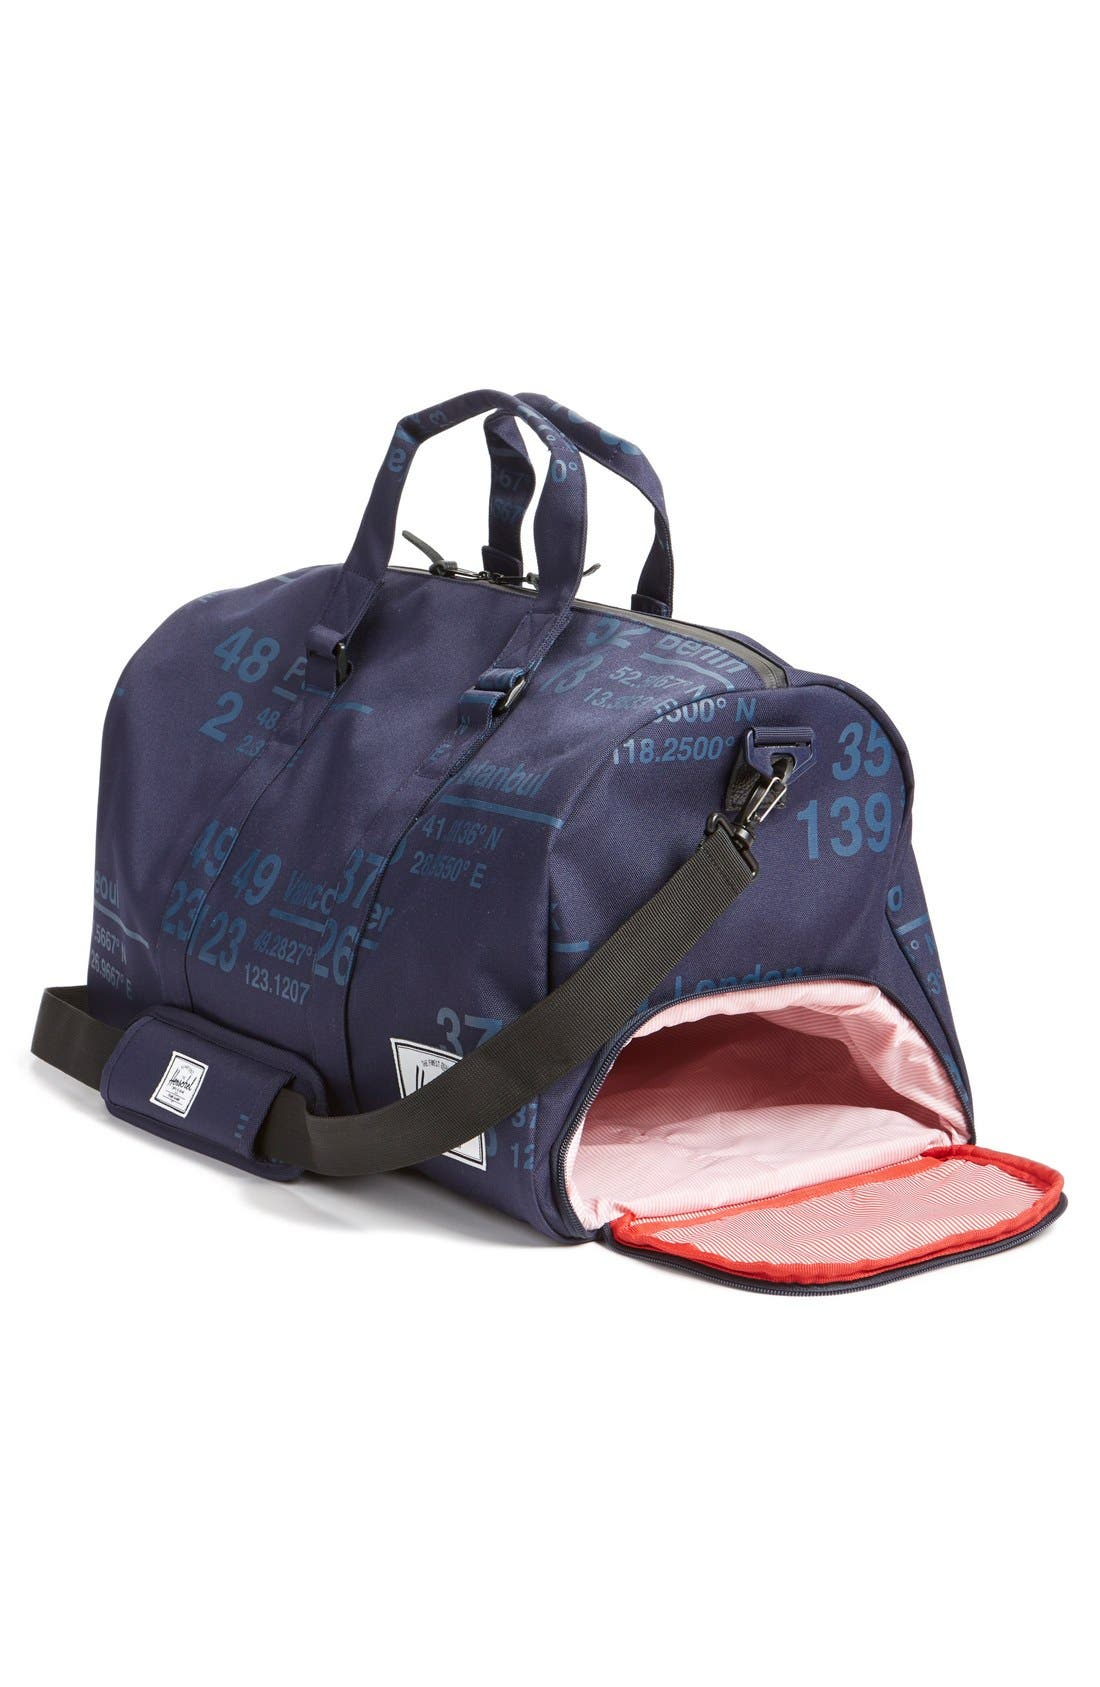 Alternate Image 3  - Herschel Supply Co. 'Novel' Duffel Bag